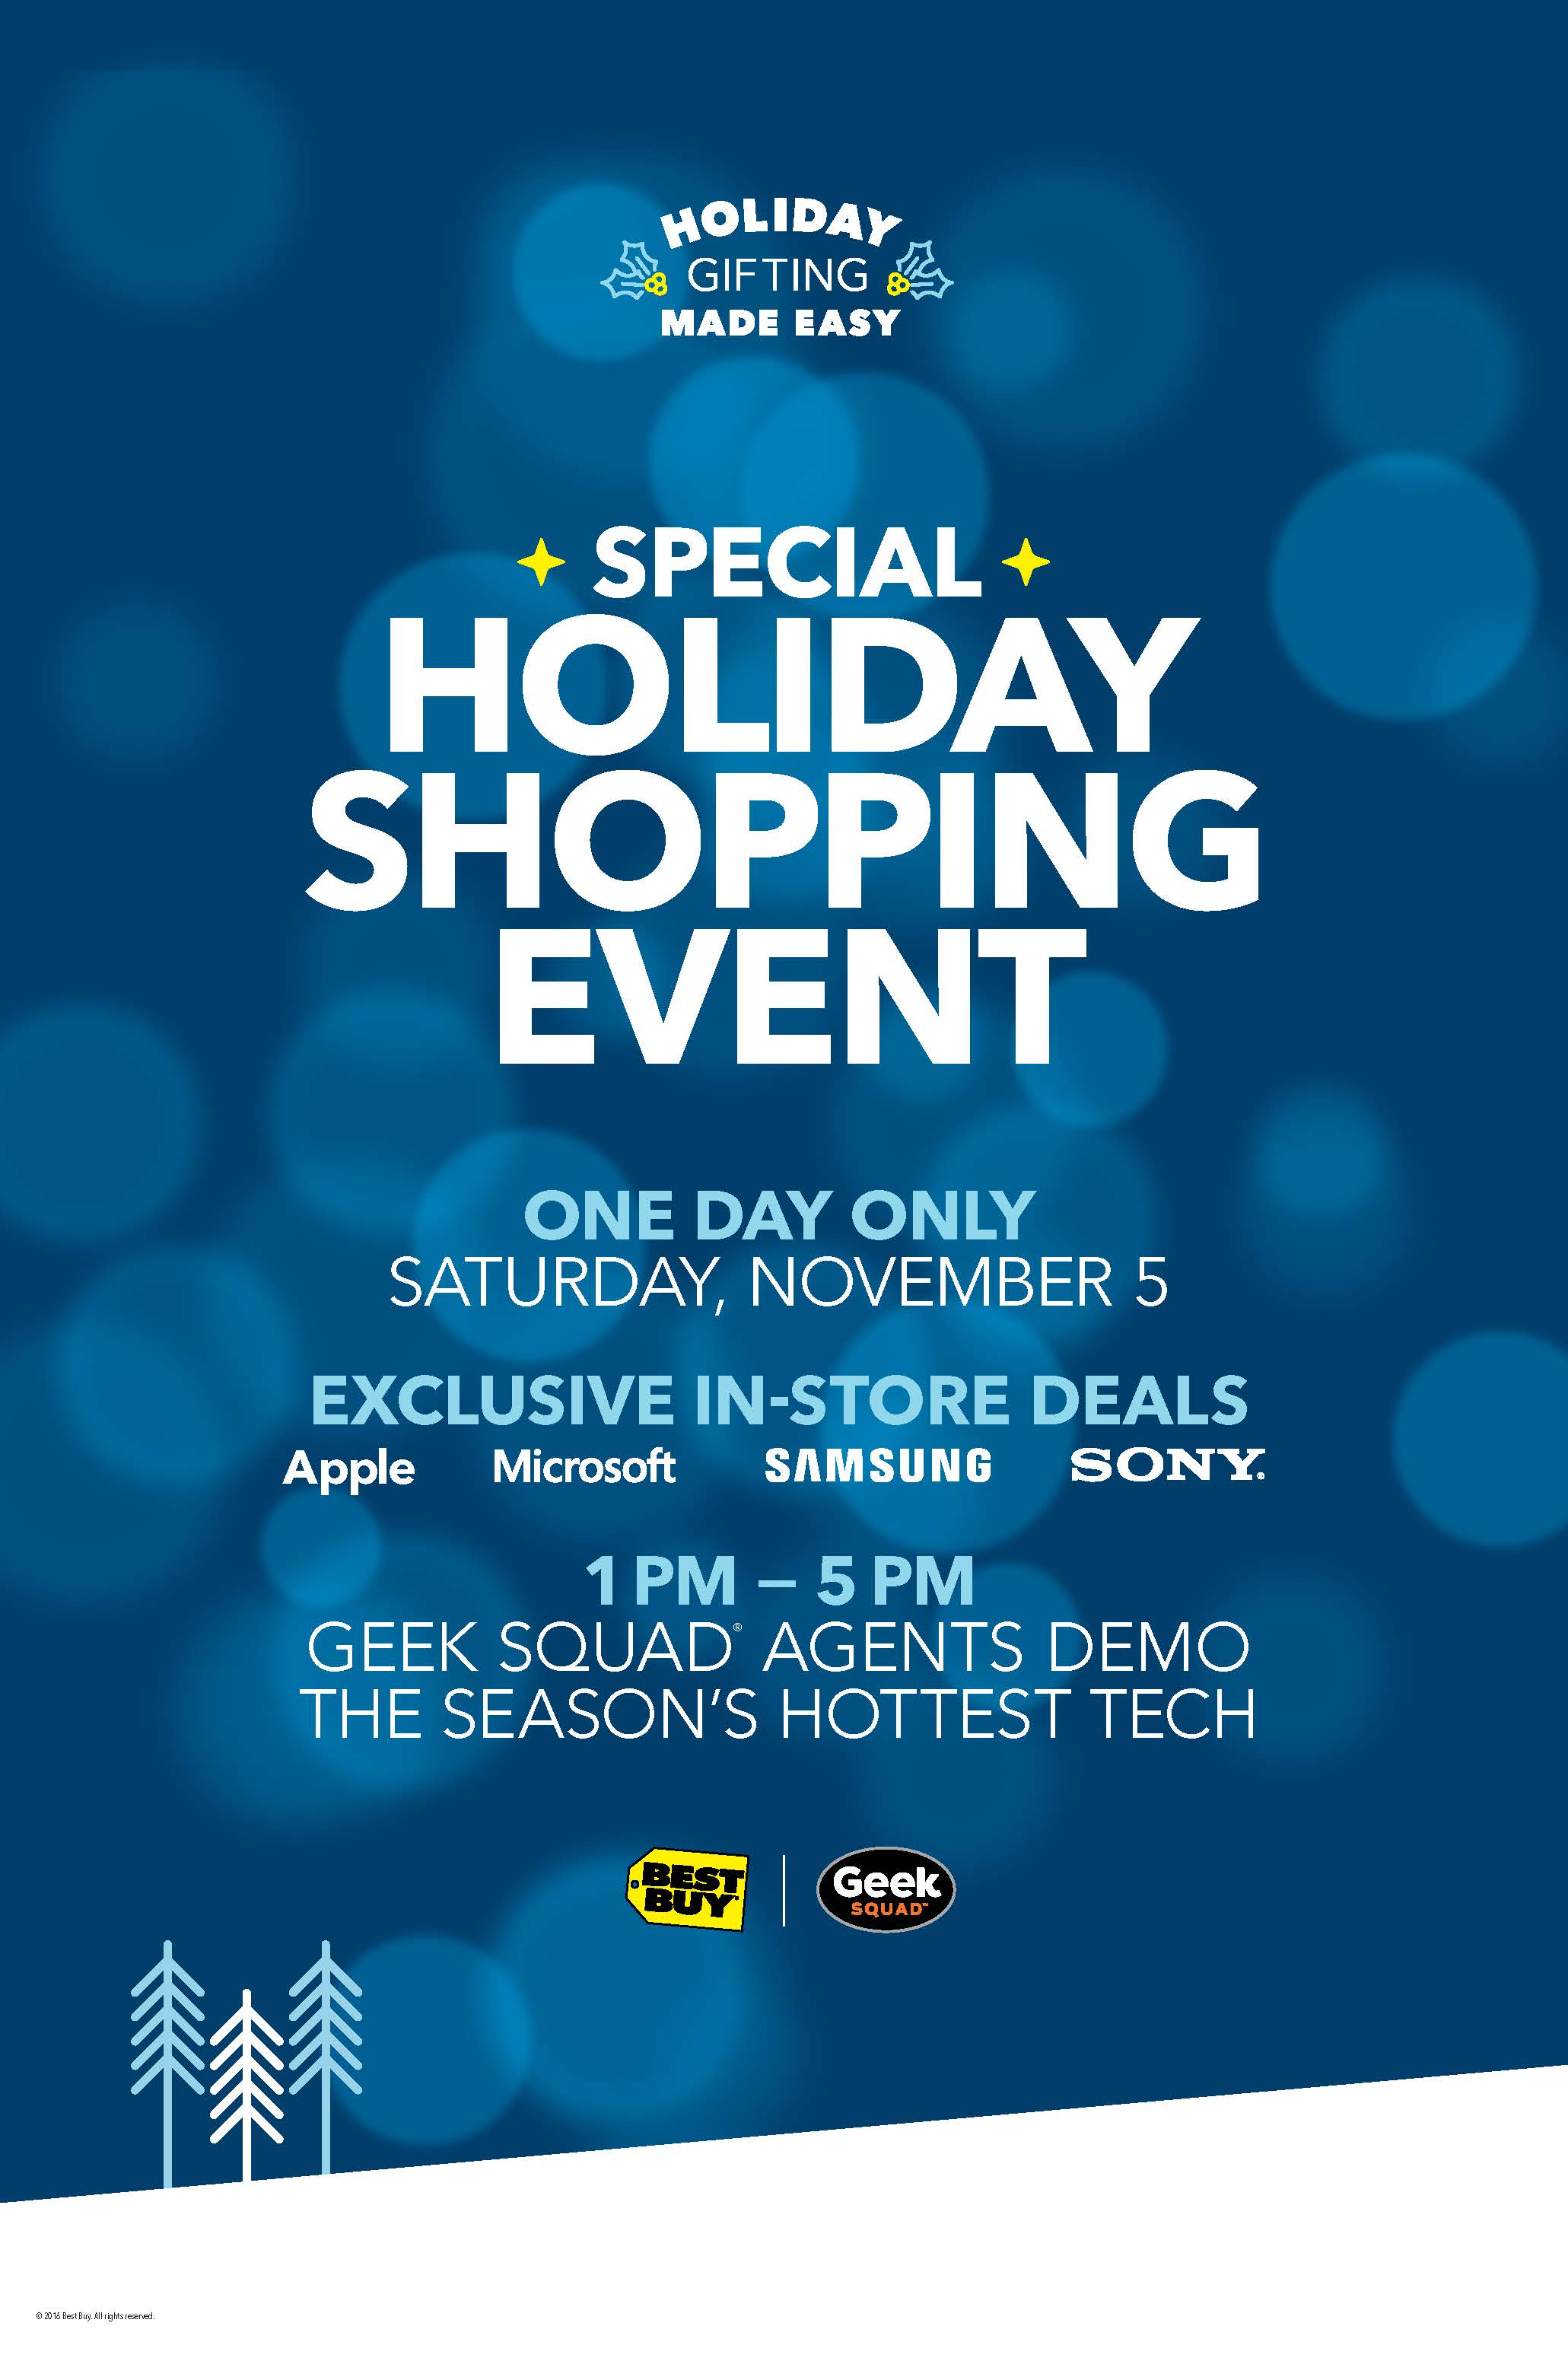 Best Buy Special Holiday Shopping Event on Saturday 11/5 in select Best Buy stores #ad http://bby.me/dg9w